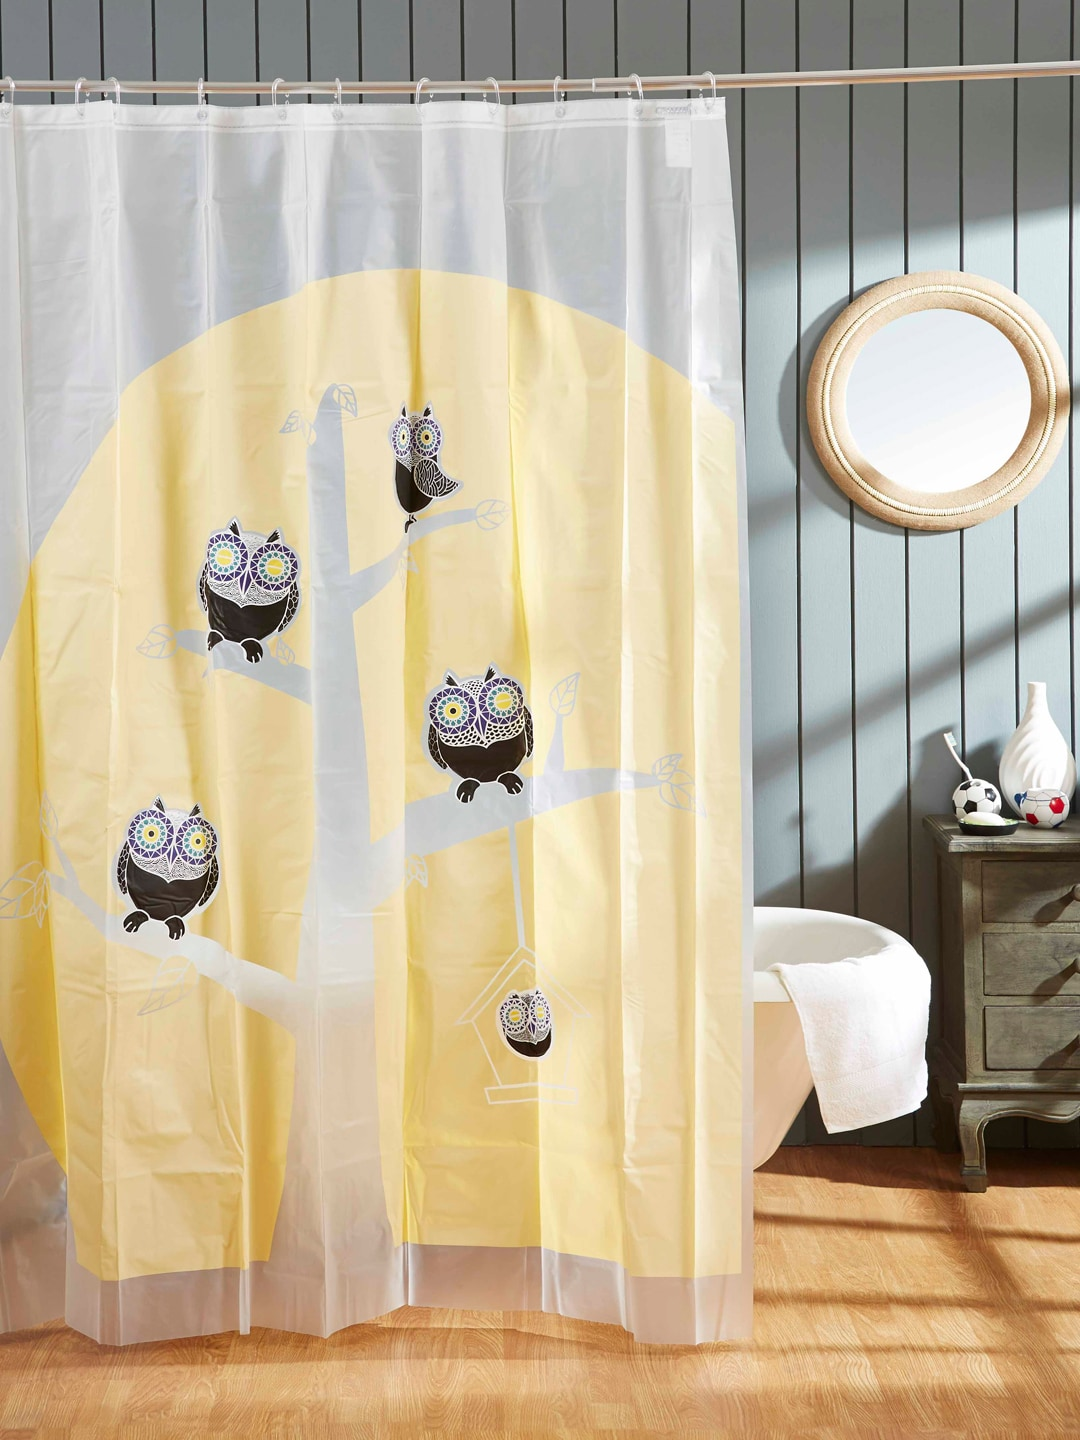 Obsessions Shower Curtains - Buy Obsessions Shower Curtains online in India